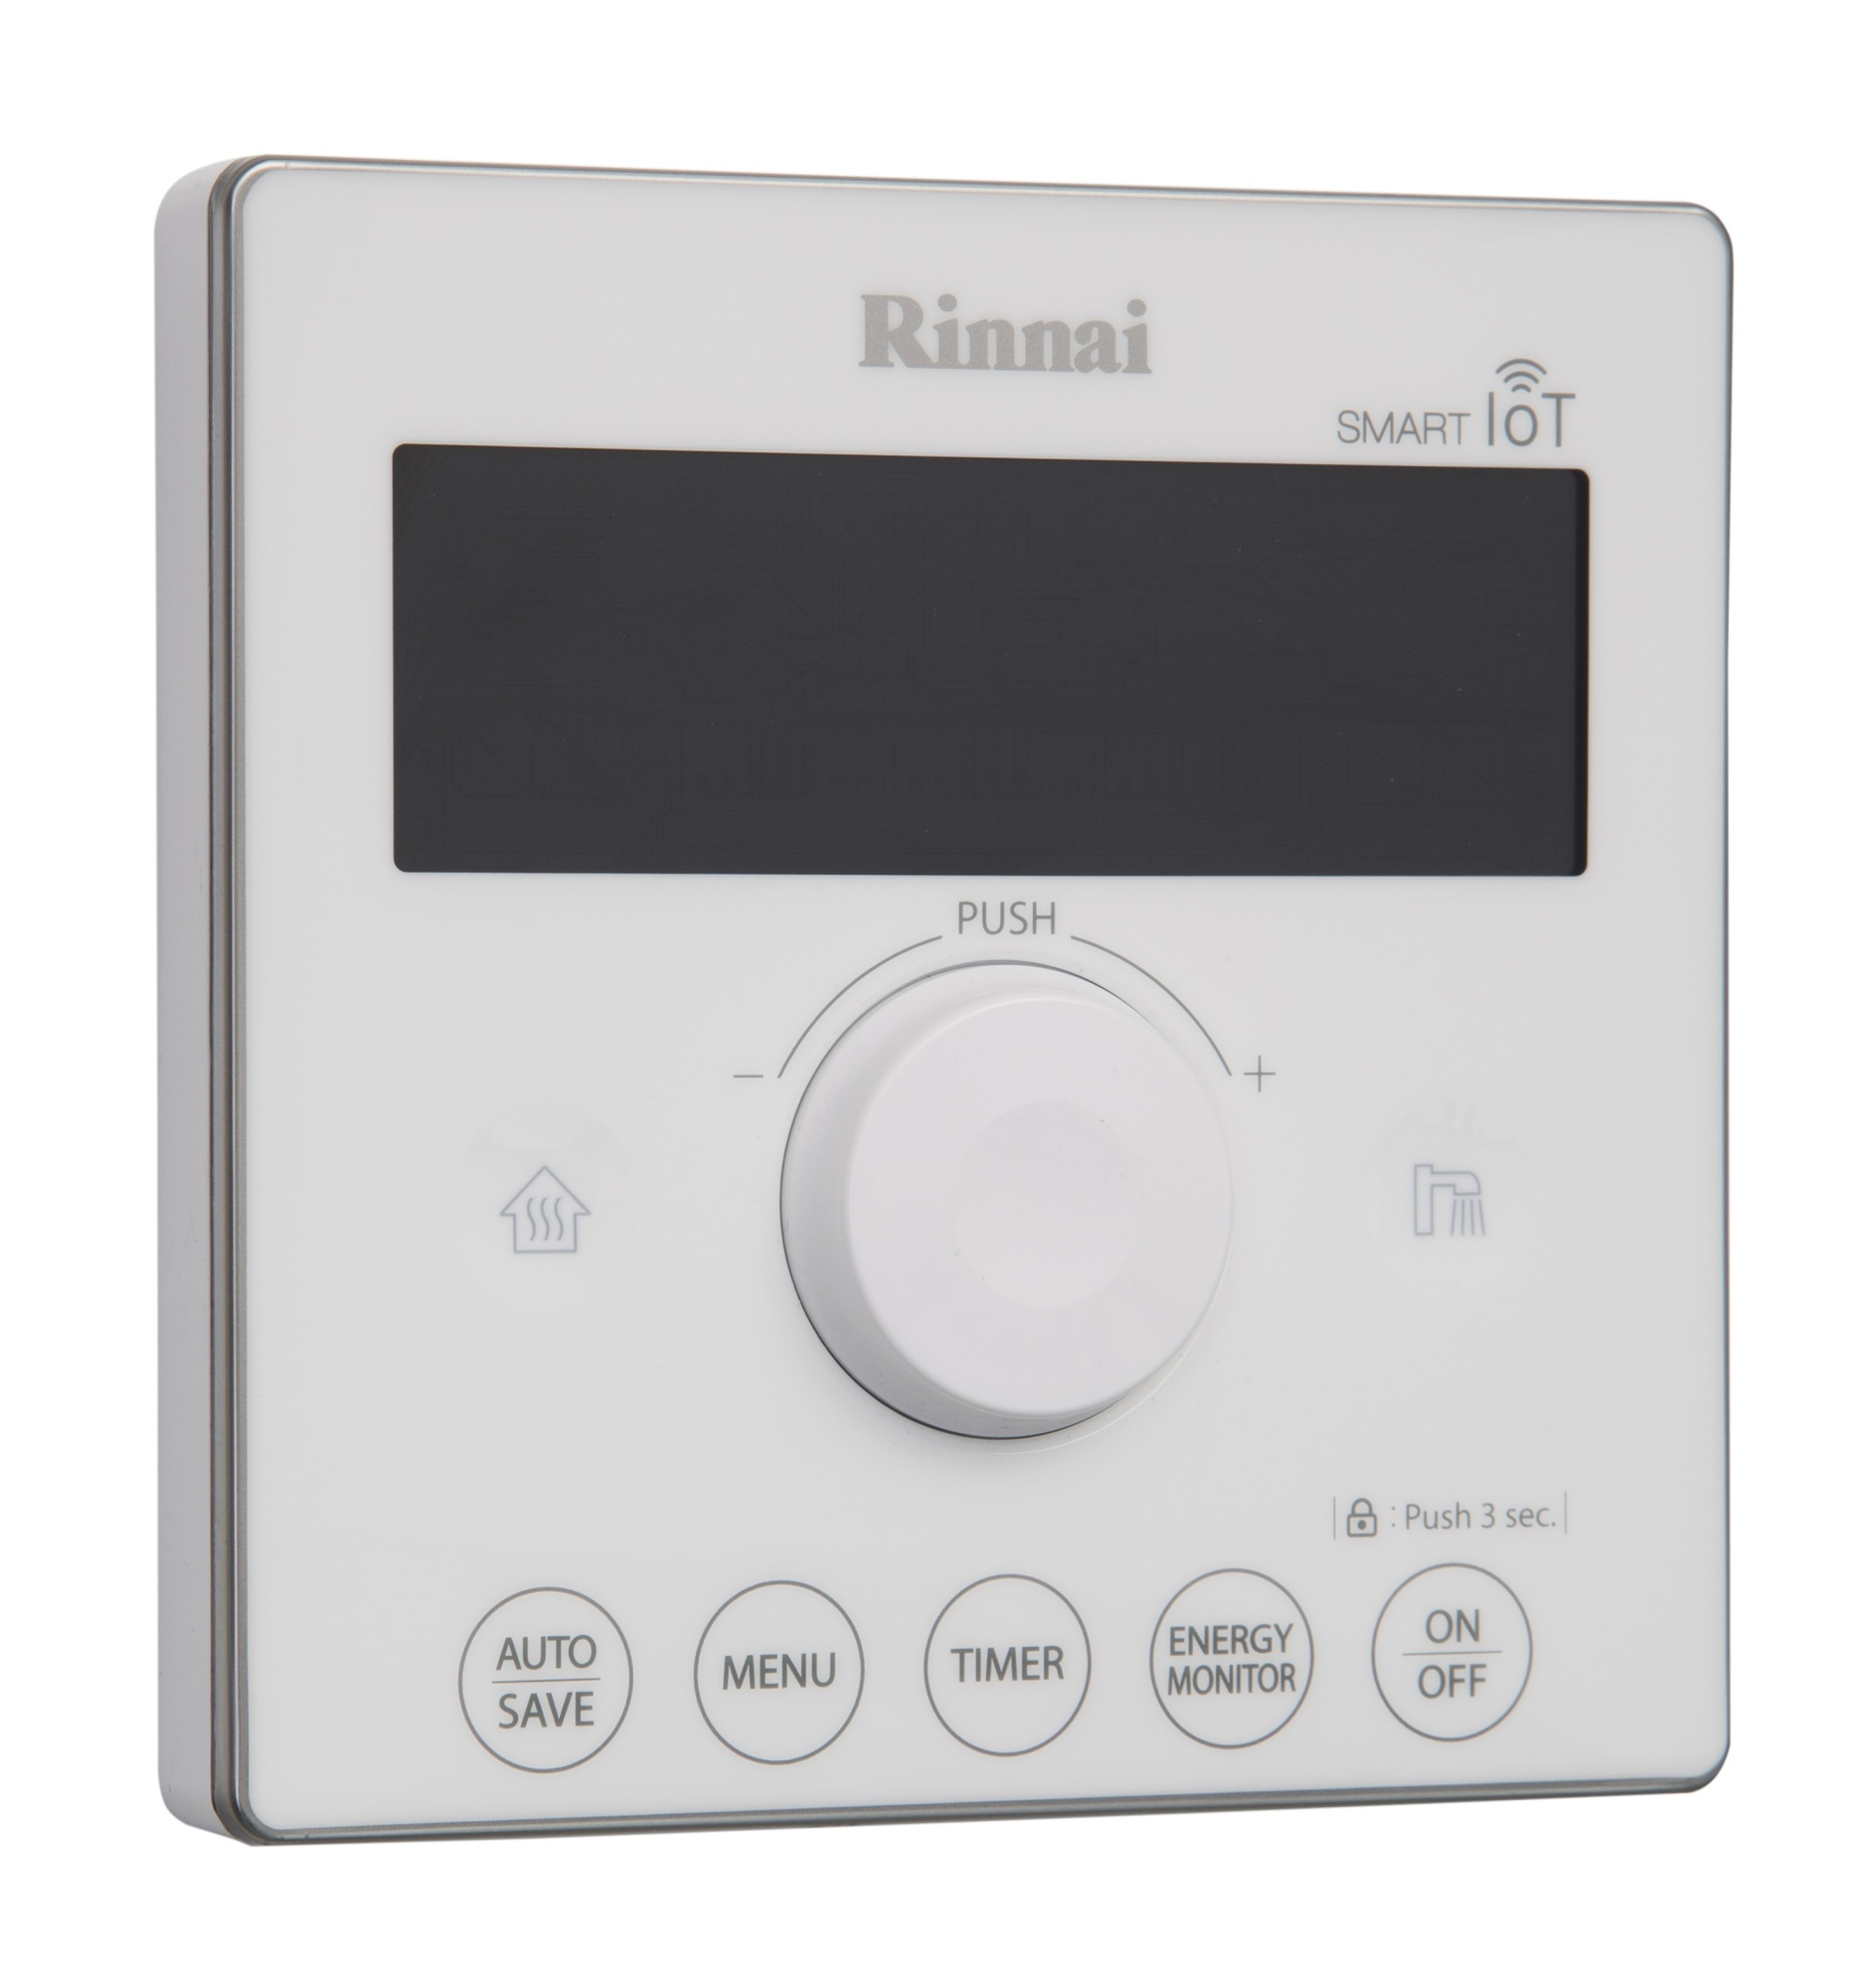 Rinnai has developed additional 'SMART' controls